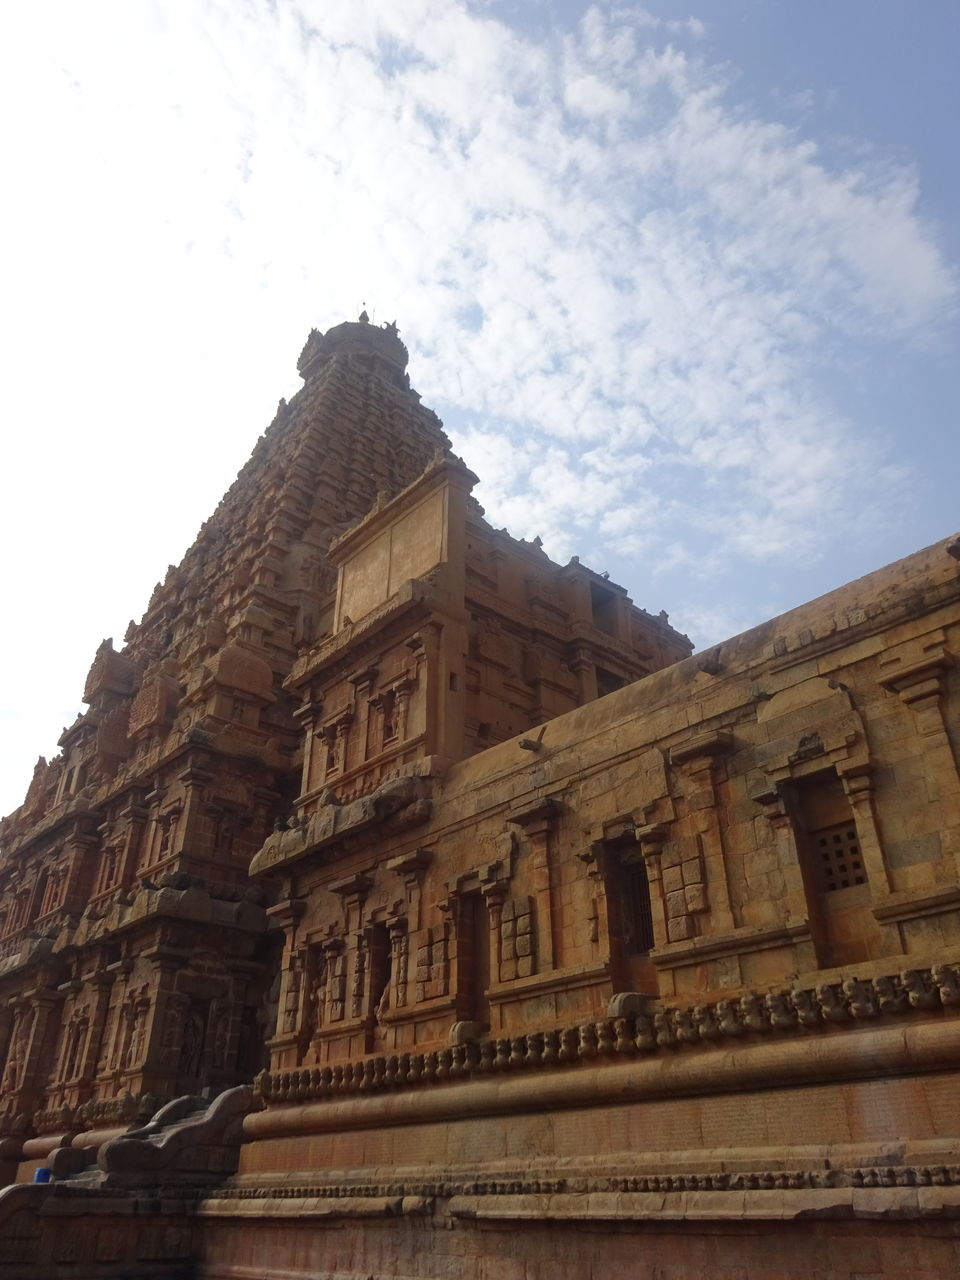 Photos of Thanjavur Big Temple Fort, Balaganapathy Nagar, Thanjavur, Tamil Nadu, India 2/3 by Prahlad Raj